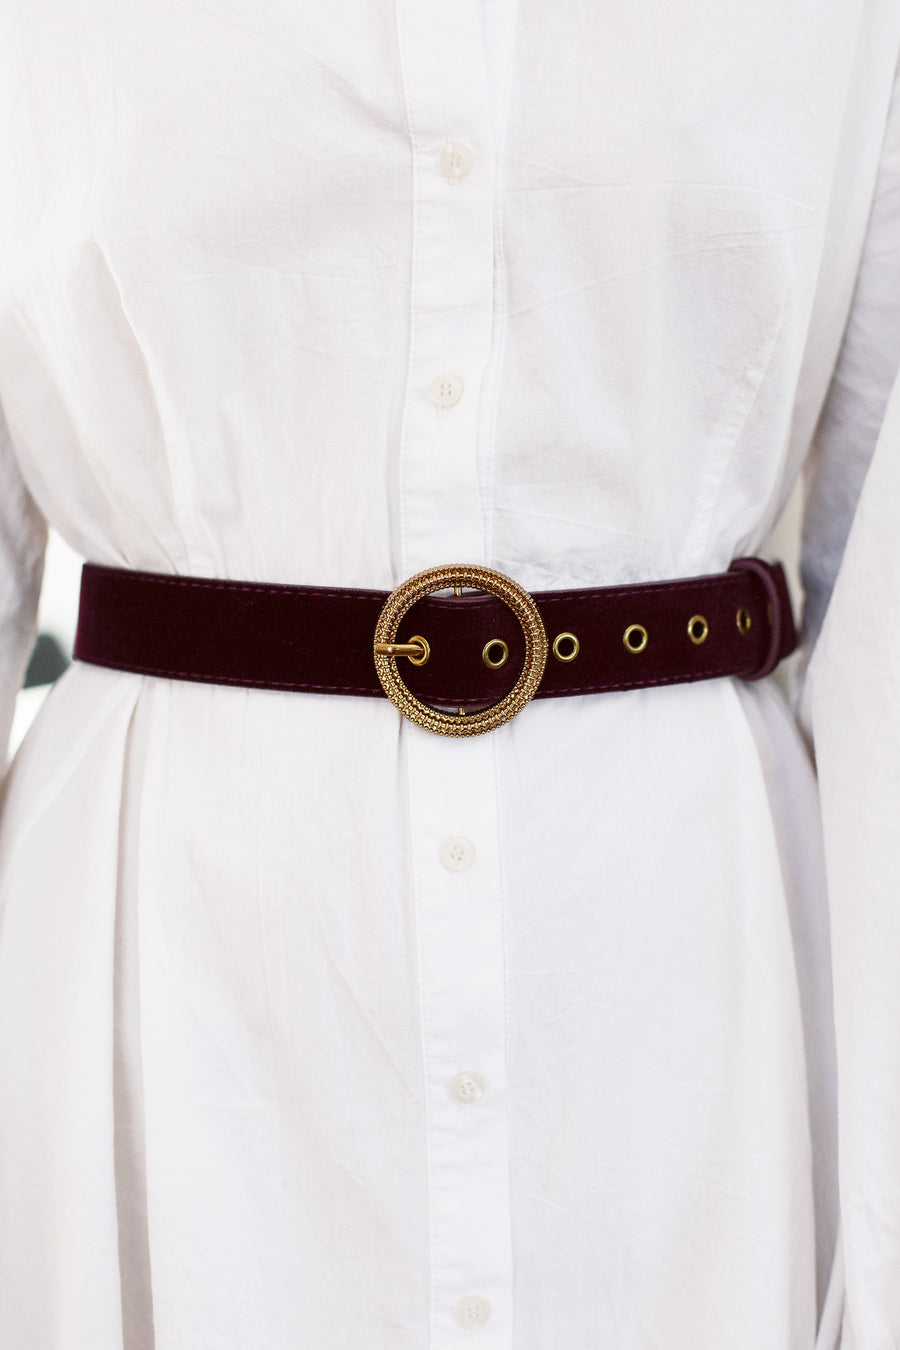 vintage gold buckle belt